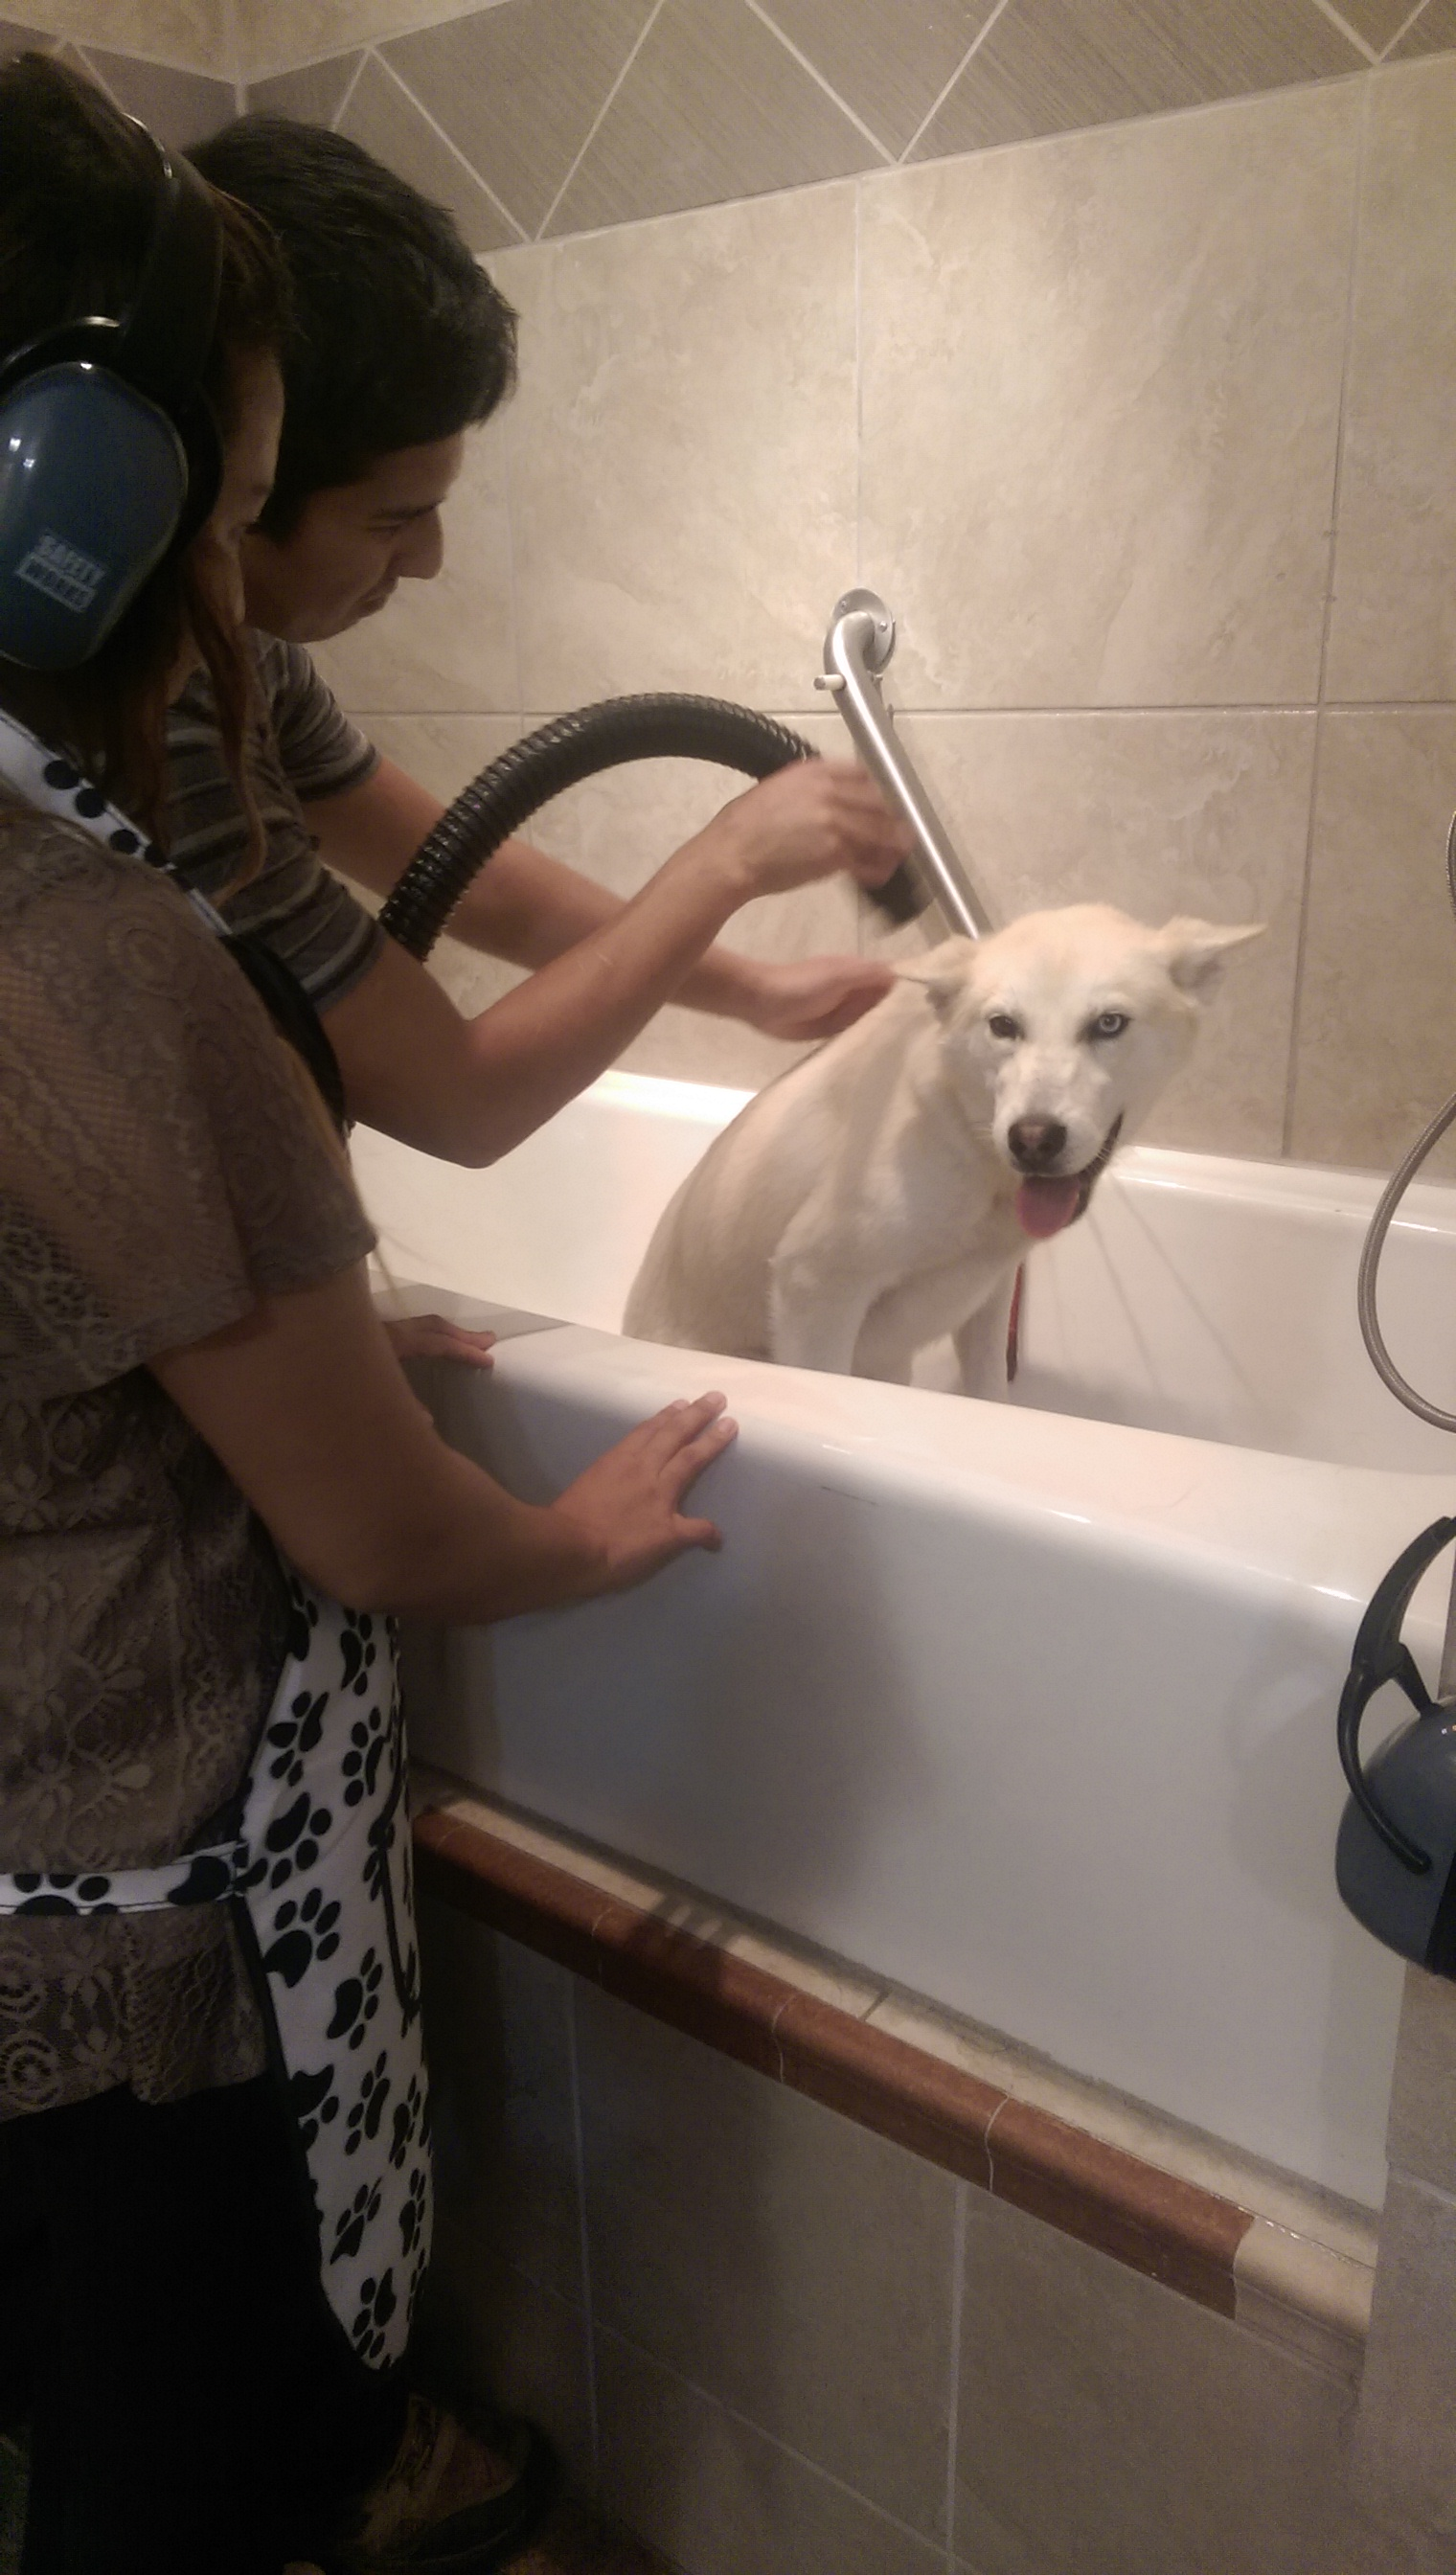 Self service dog wash pioneer pet grooming self dog wash self service dog wash anyone who has bathed their dogs at home know what kind of mess it makes in your bathroom not to mention the strain on your back solutioingenieria Gallery